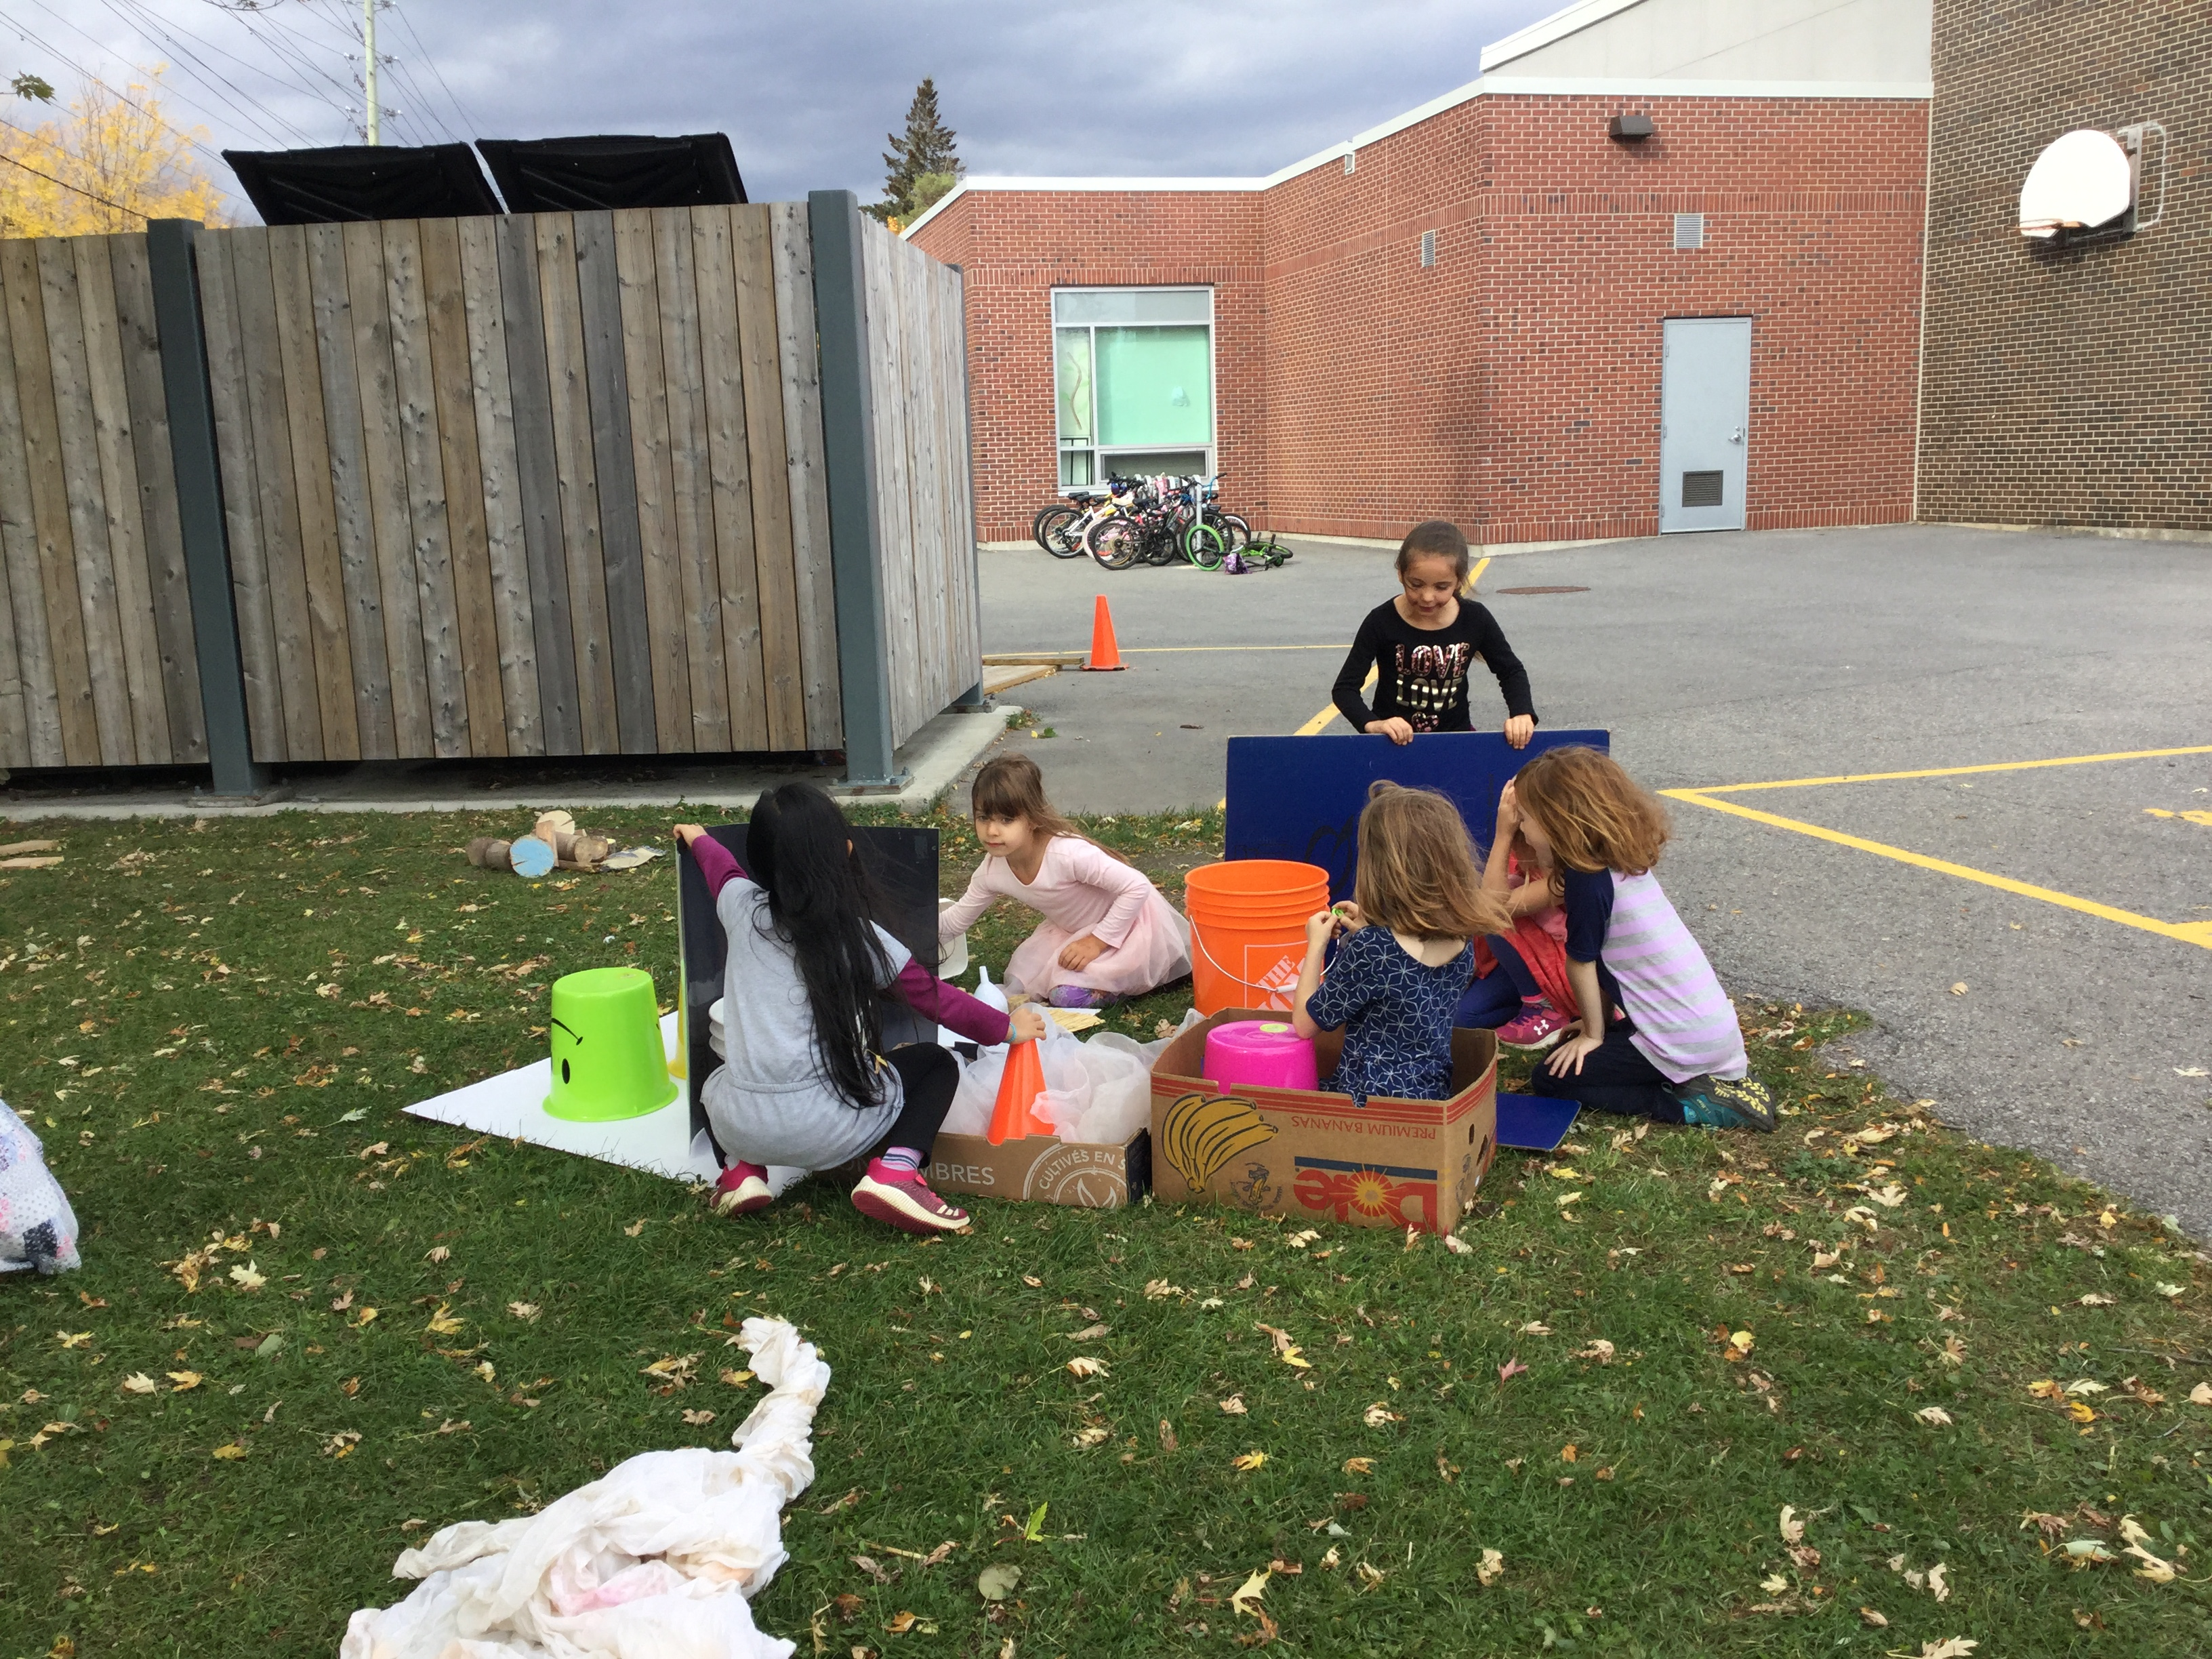 Kids play with loose parts outside.